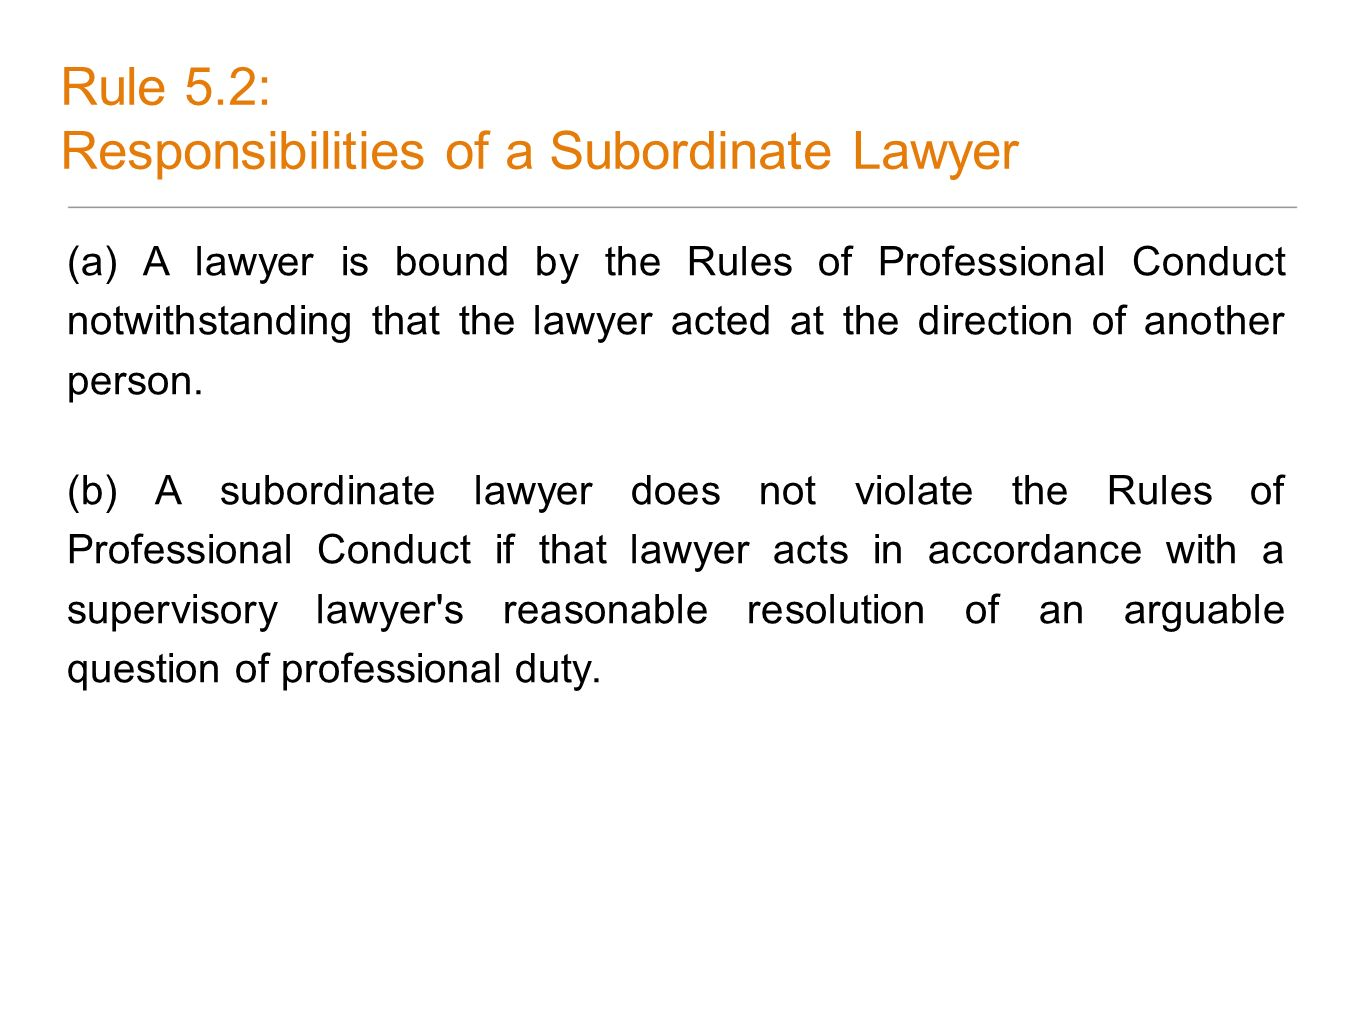 Rule 5.2: Responsibilities of a Subordinate Lawyer